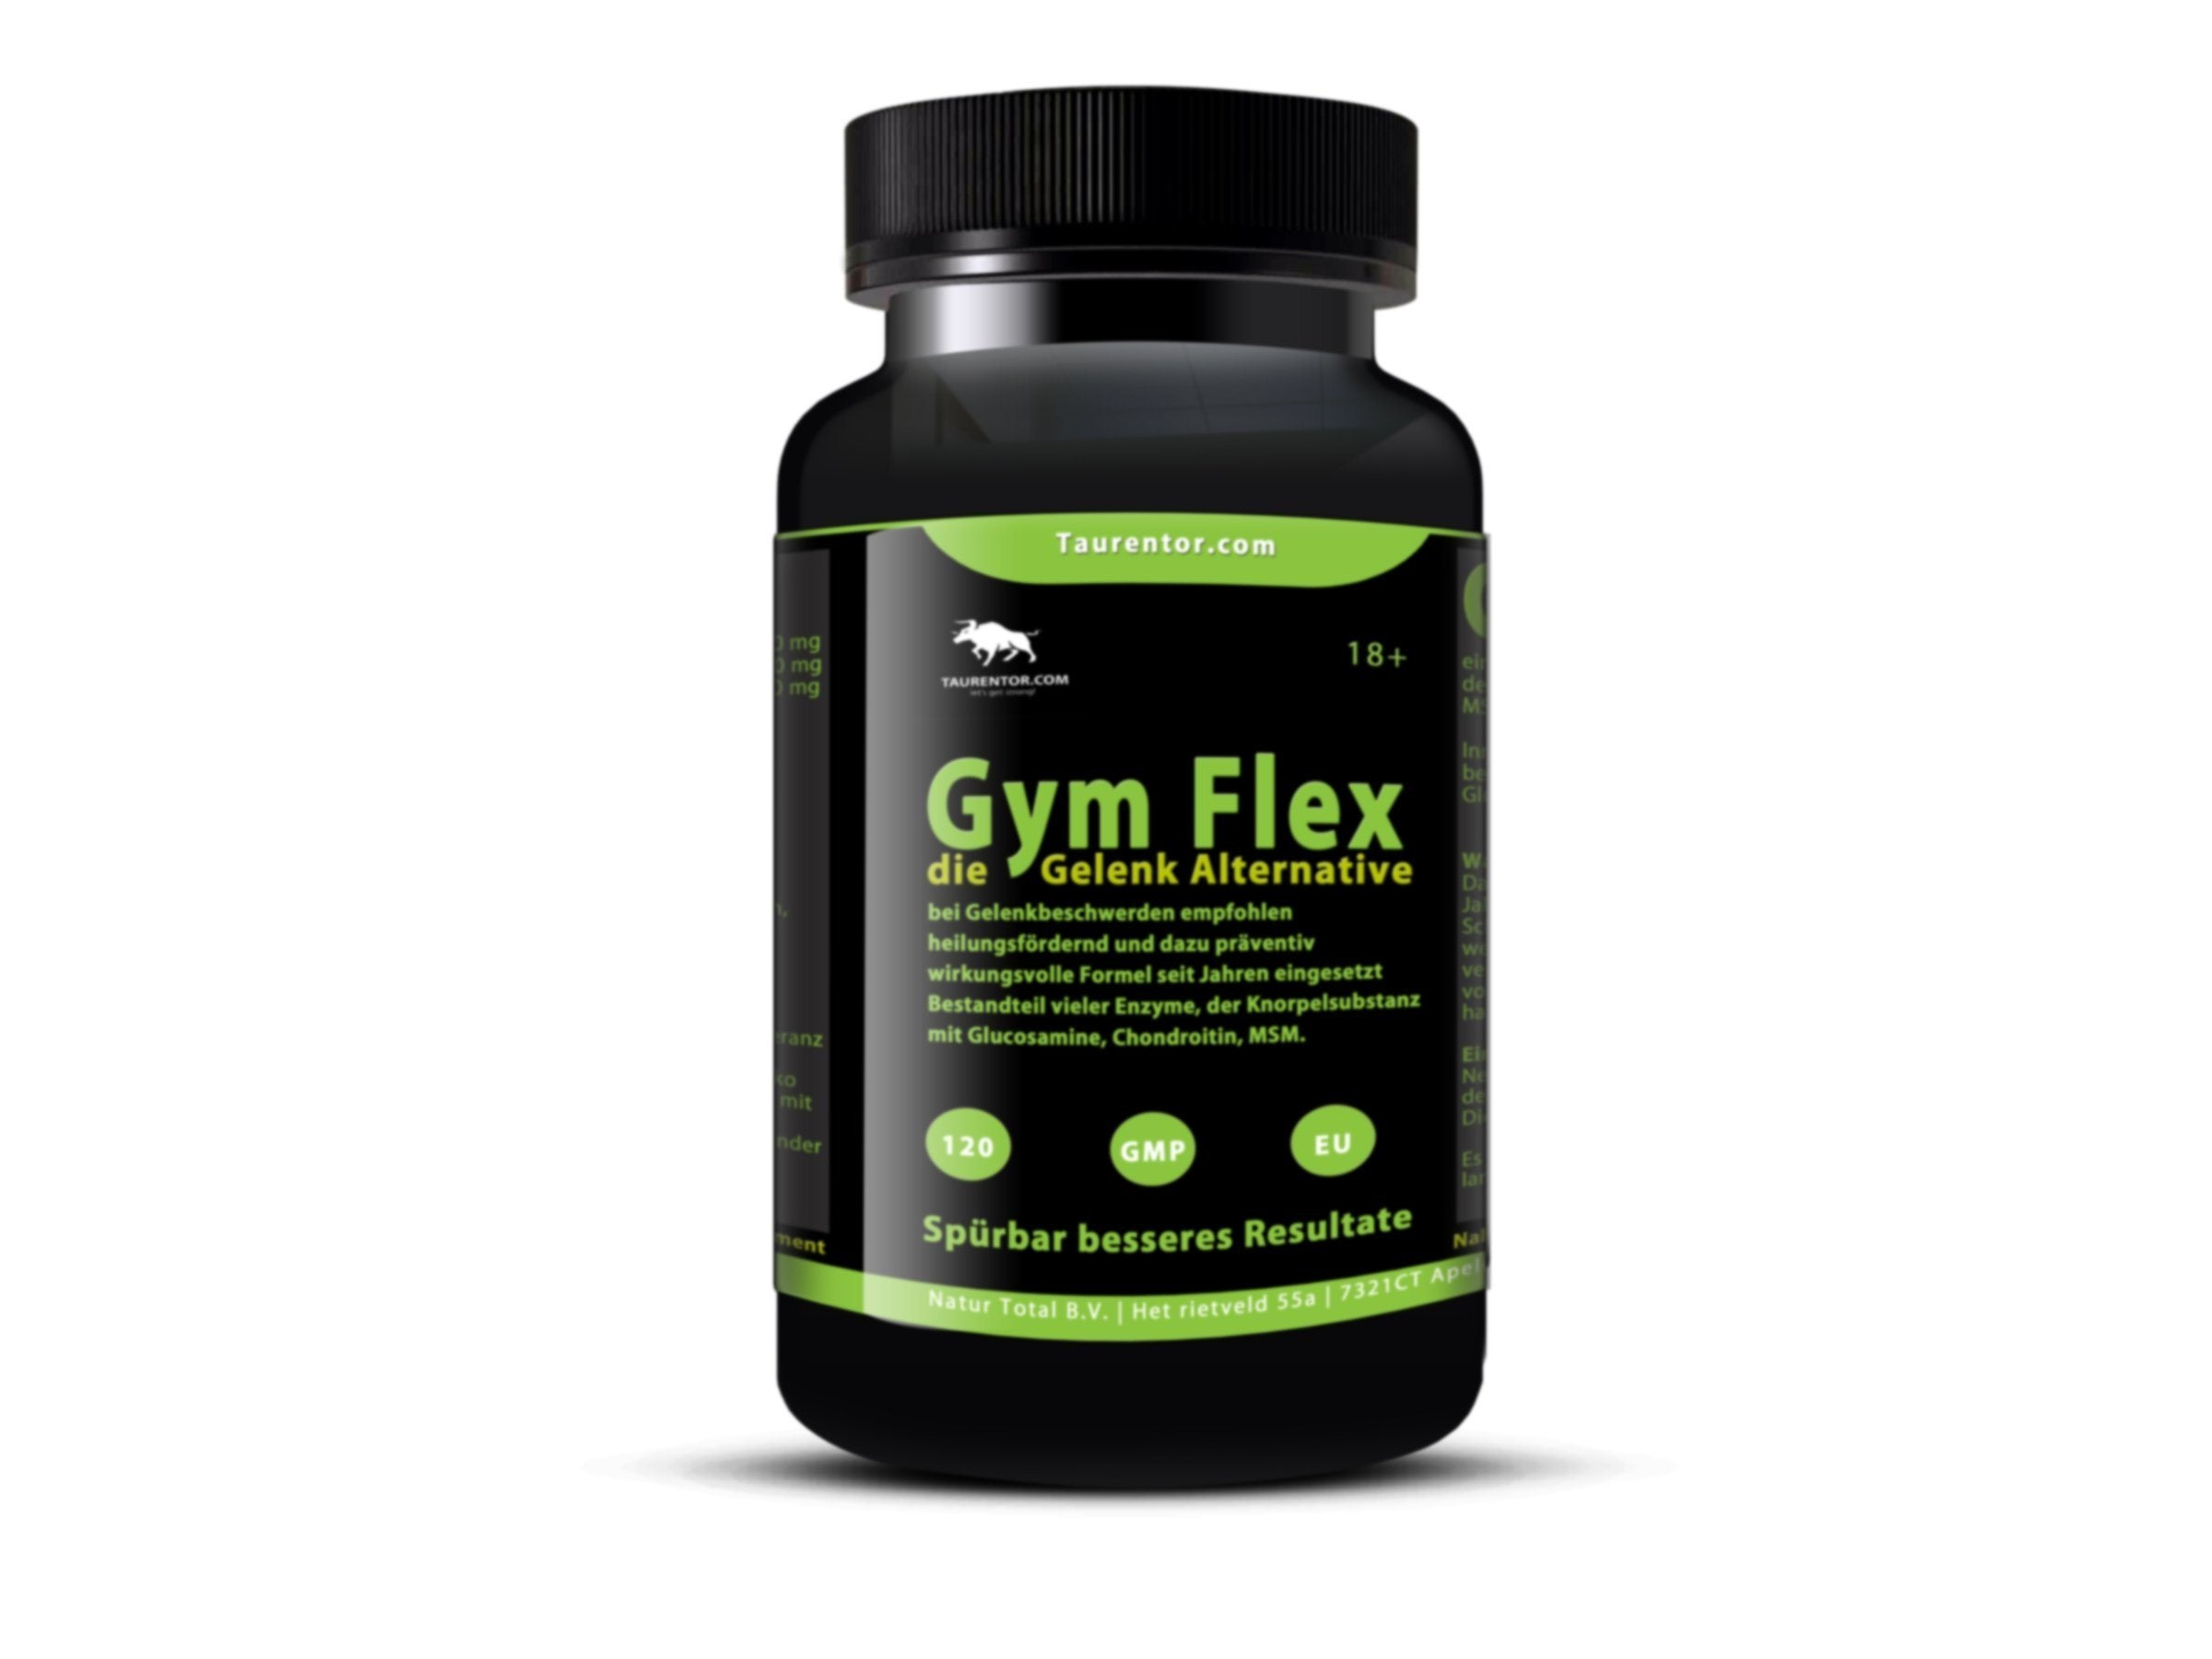 Gym Flex Flex Pro 120 Tabletten die Gelenk Alternative - Naturtotalshop.com